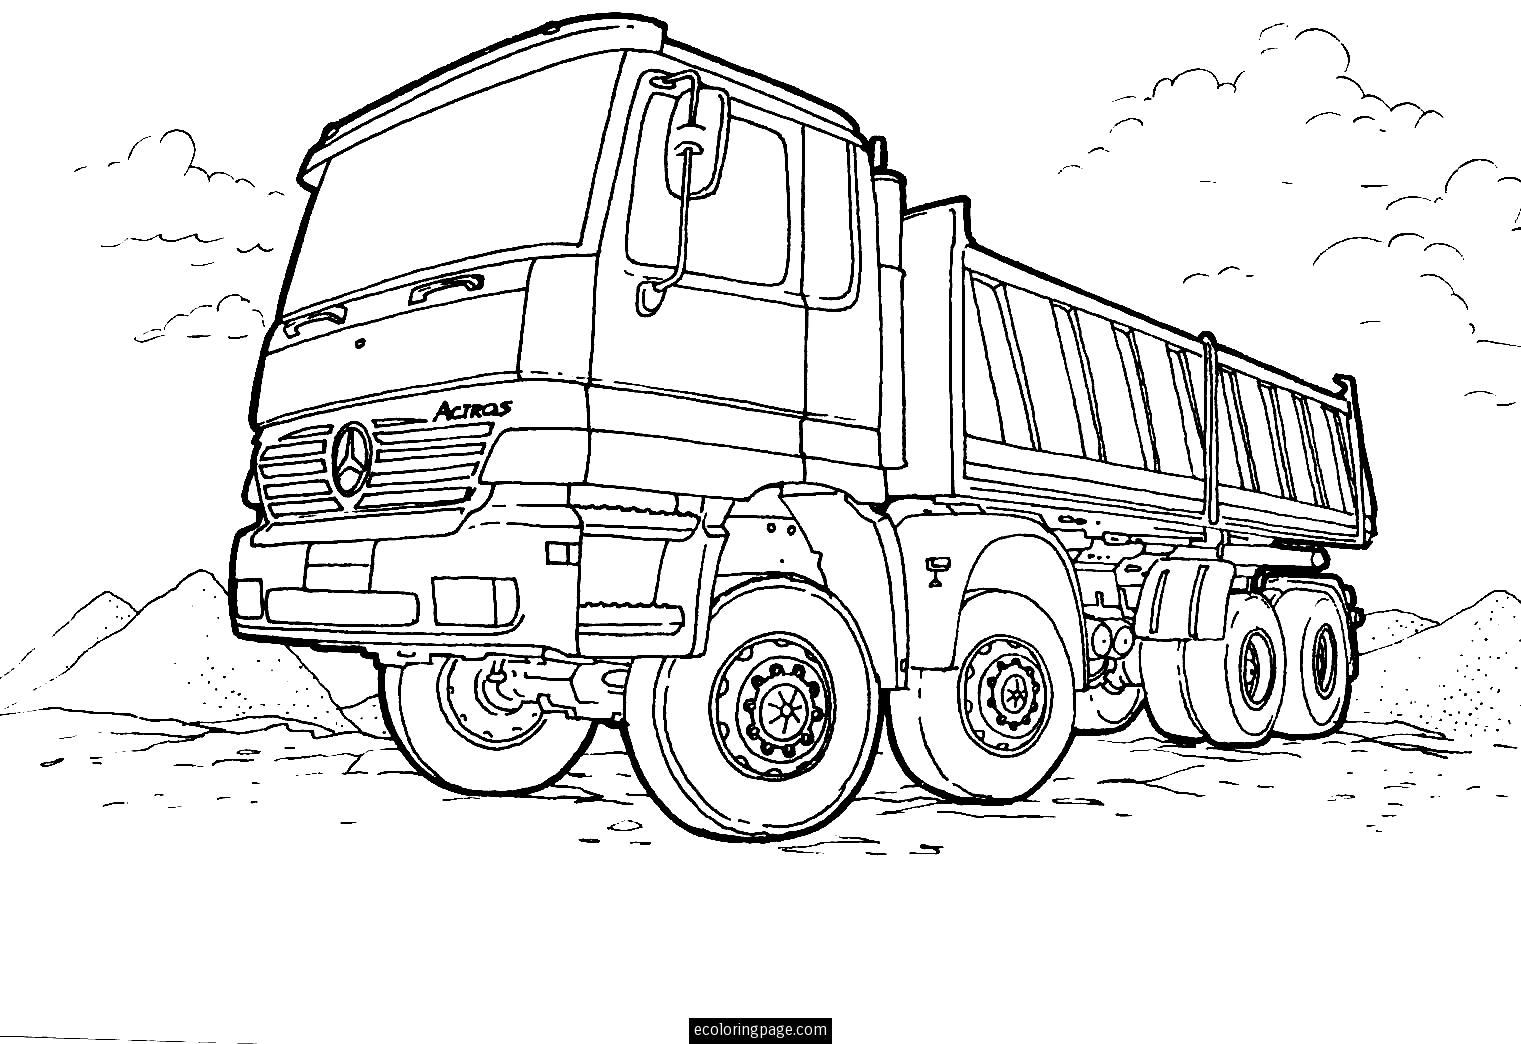 colouring in trucks semi truck coloring pages to download and print for free trucks colouring in